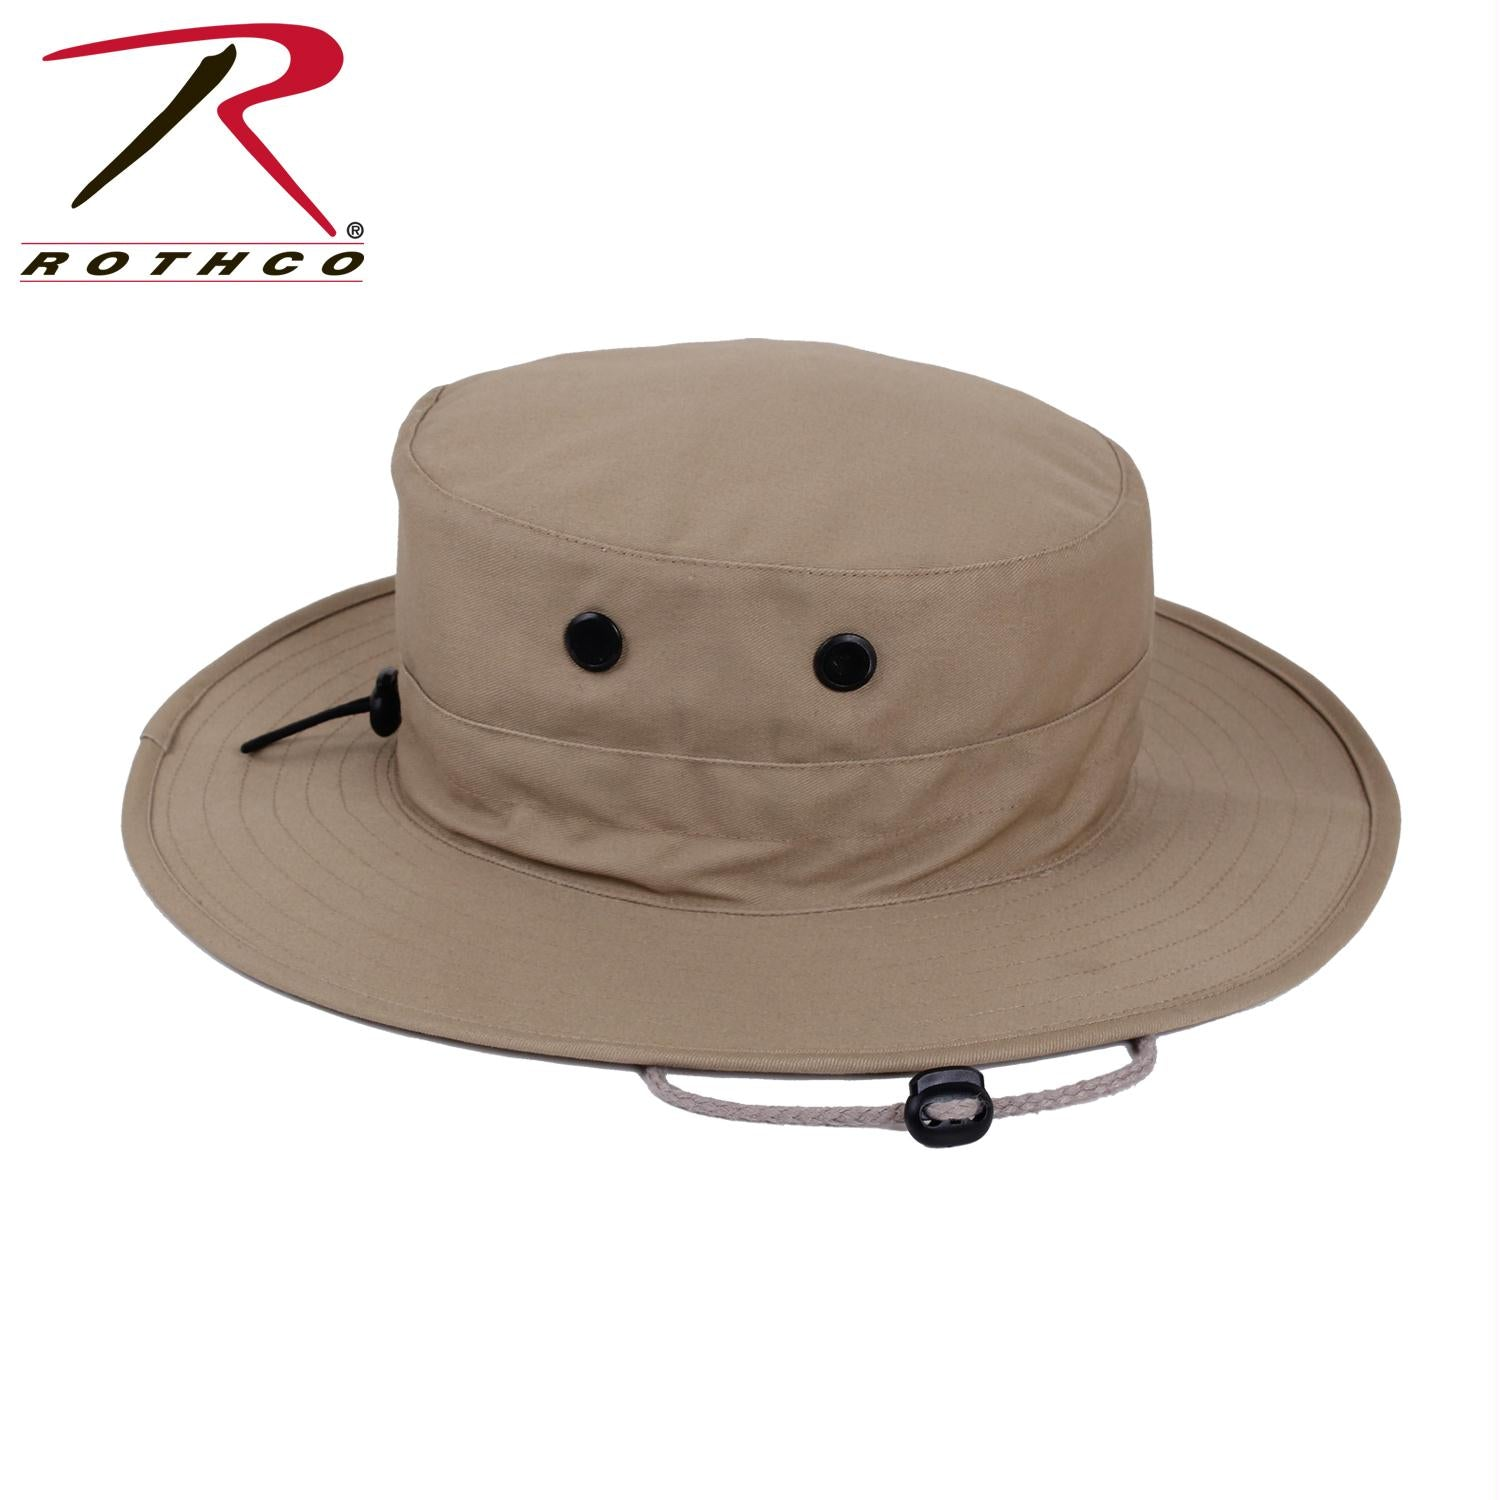 Rothco Adjustable Boonie Hat - Khaki / One Size